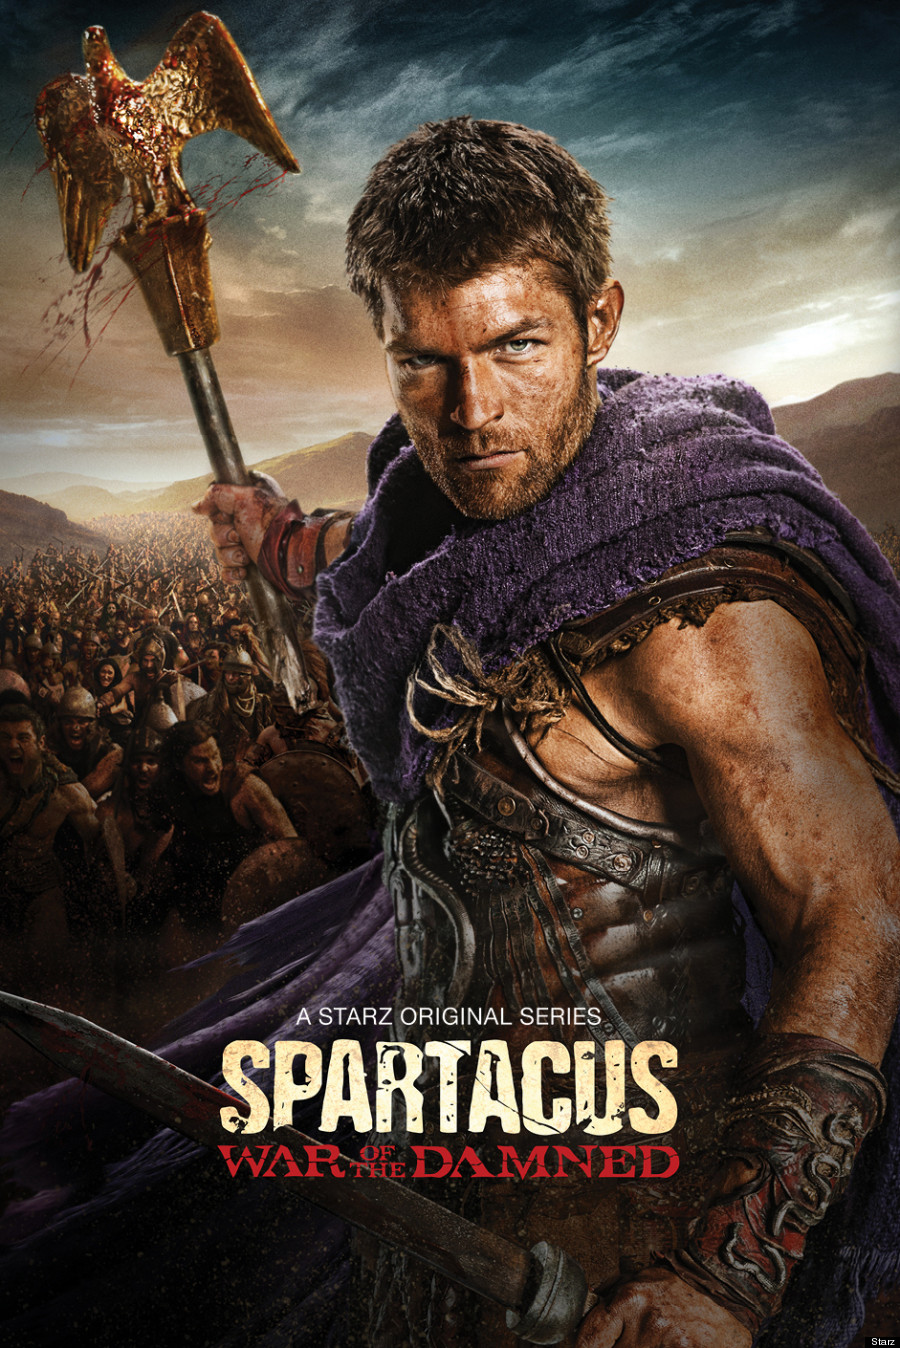 Spartacus 2013 War Of The Damned (HDTV) Final de Temporada Cap 1 al 10